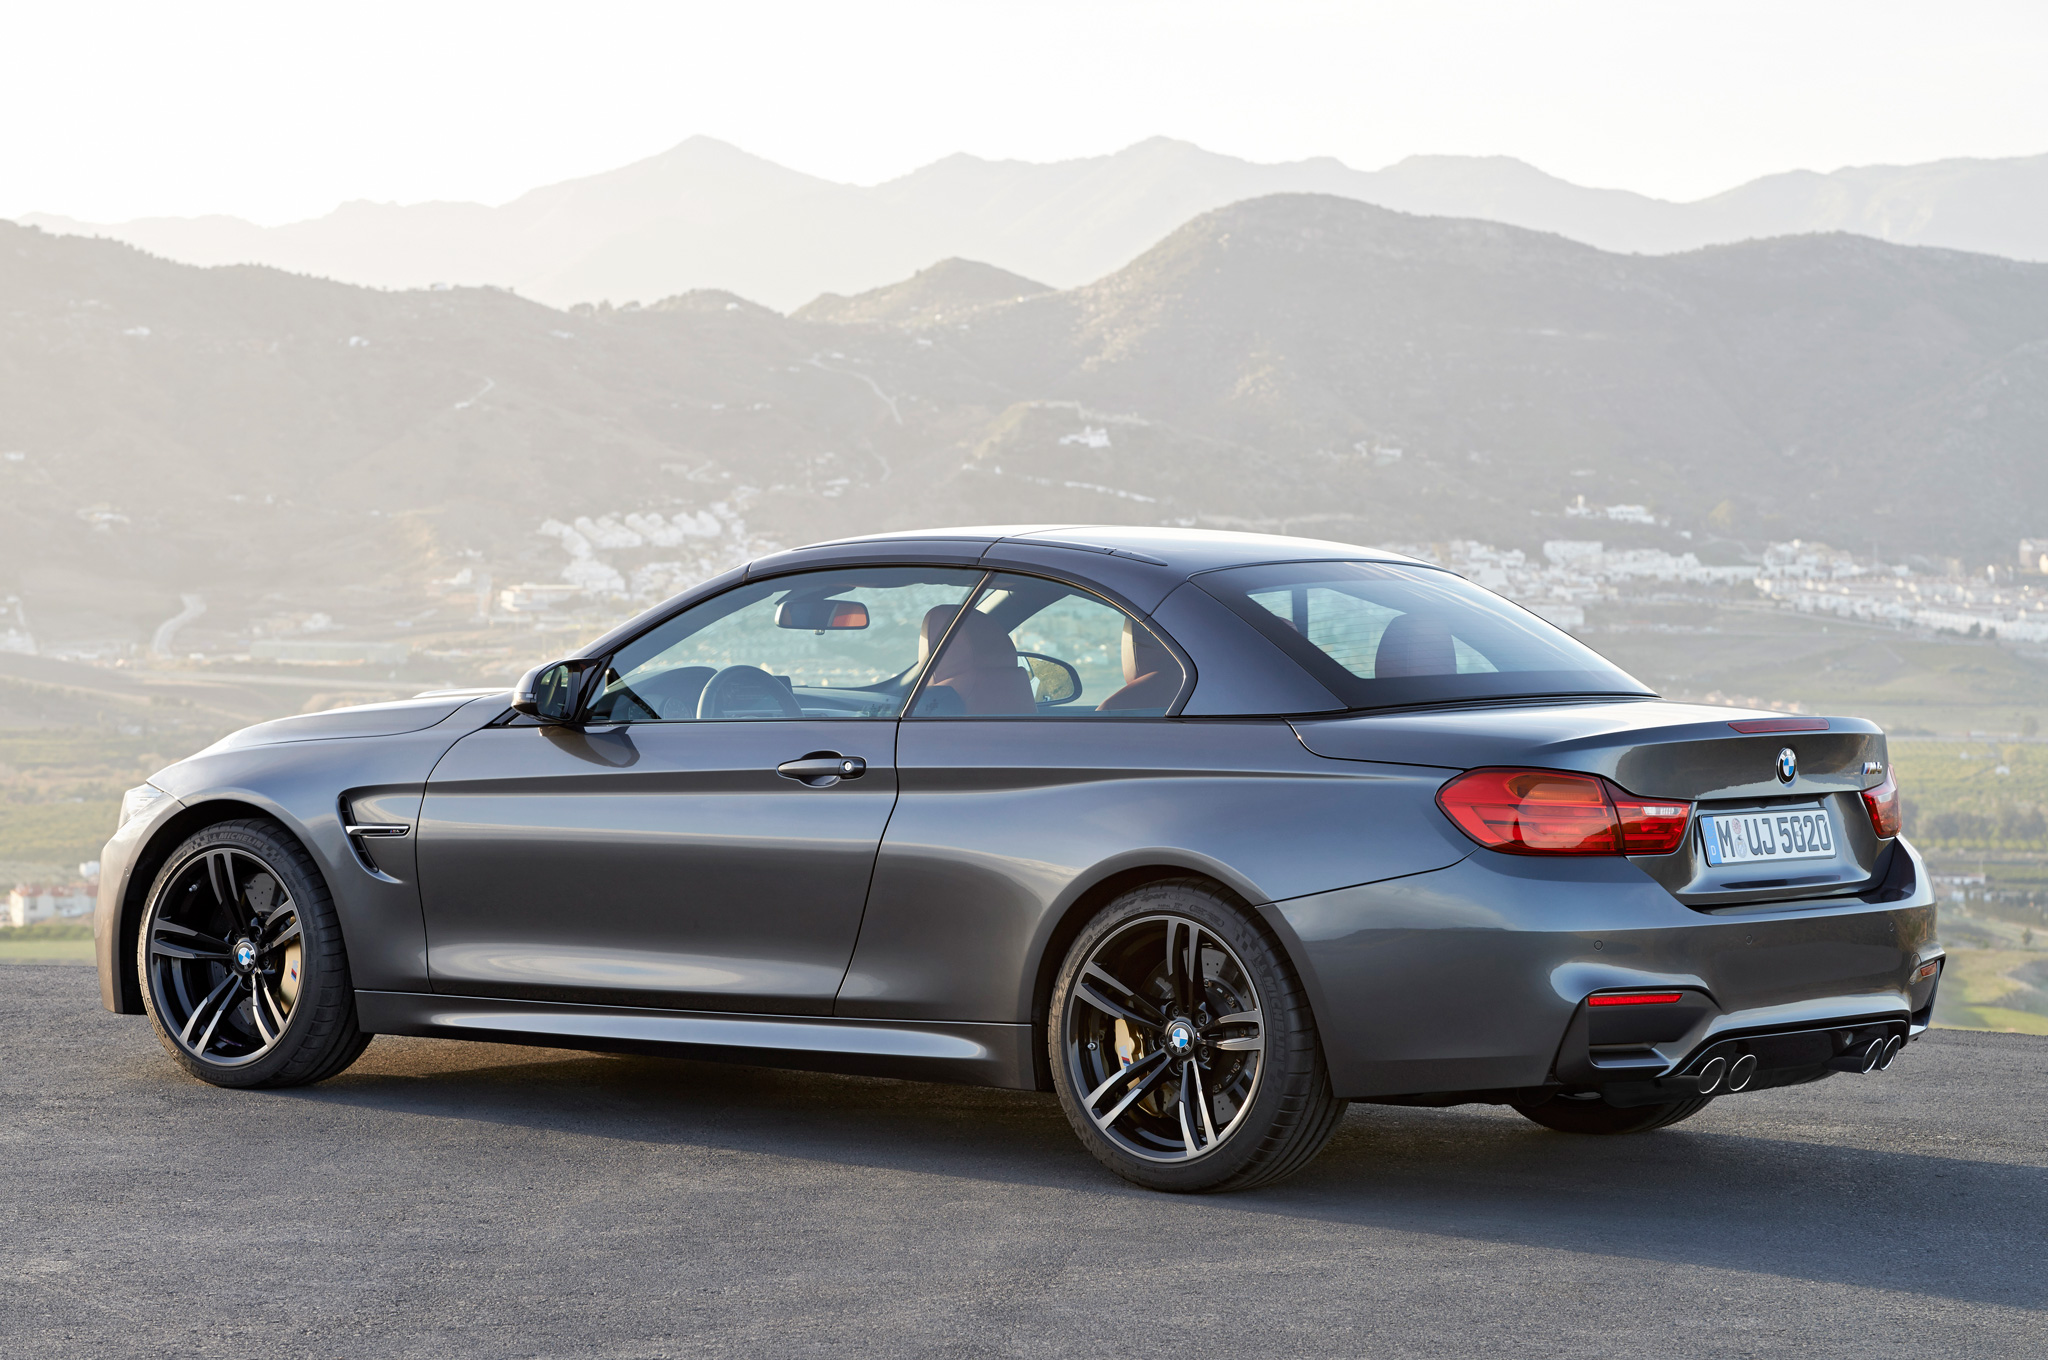 2015 Bmw M4 Convertible Top Up Rear Rear Side (View 5 of 50)